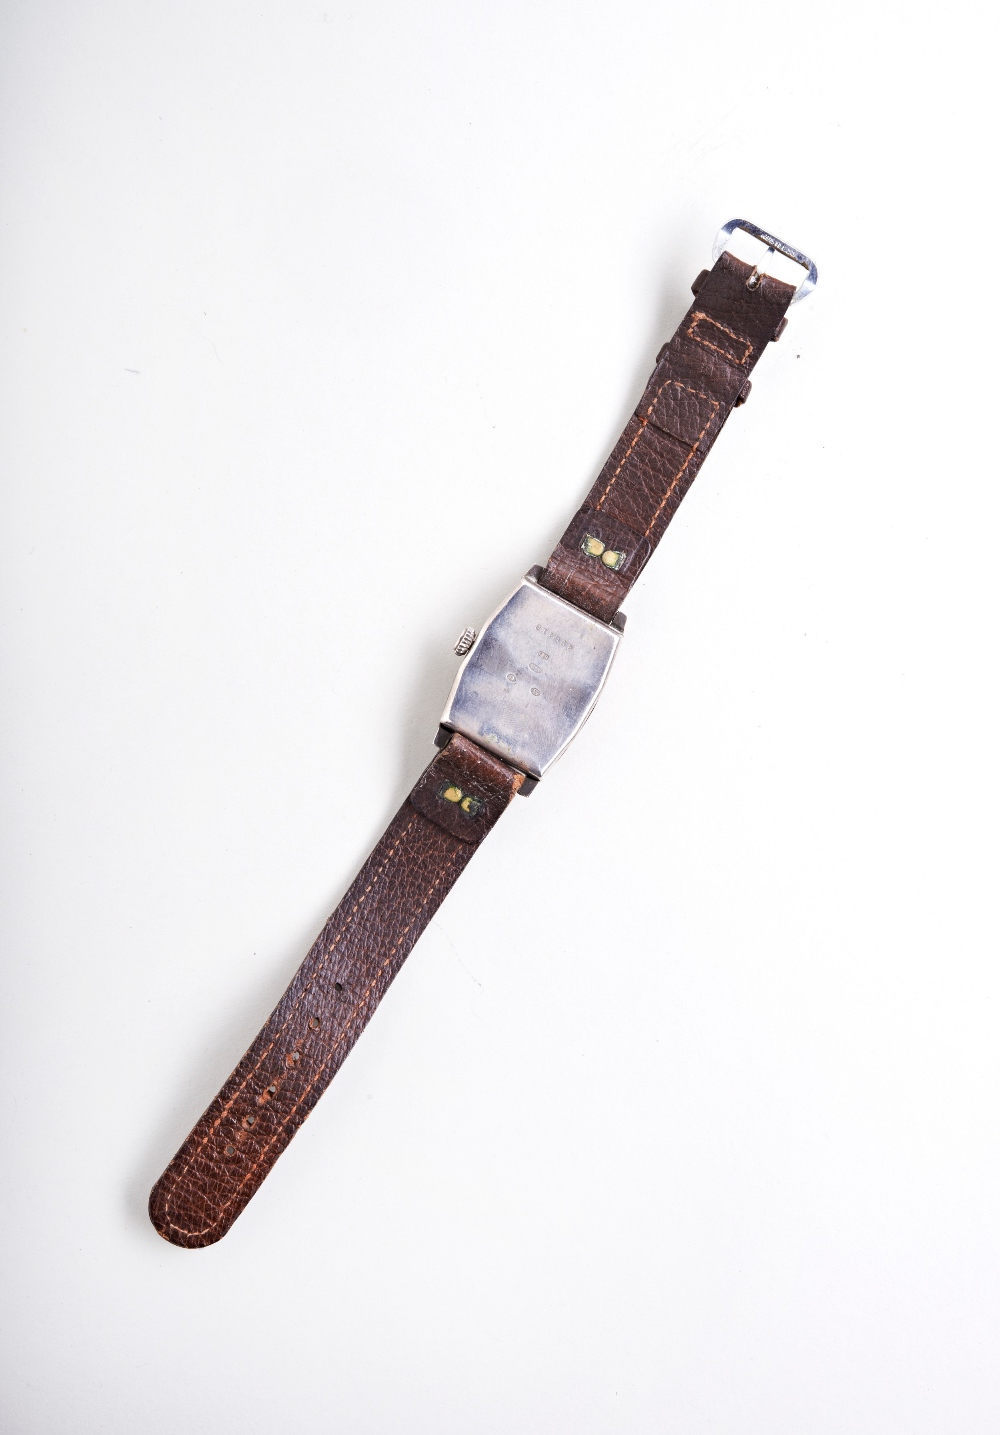 SWISS SILVER TONNEAU SHAPED MANUAL WRISTWATCH, c1915, the ?silver? dial with Arabic numerals, the - Image 3 of 3